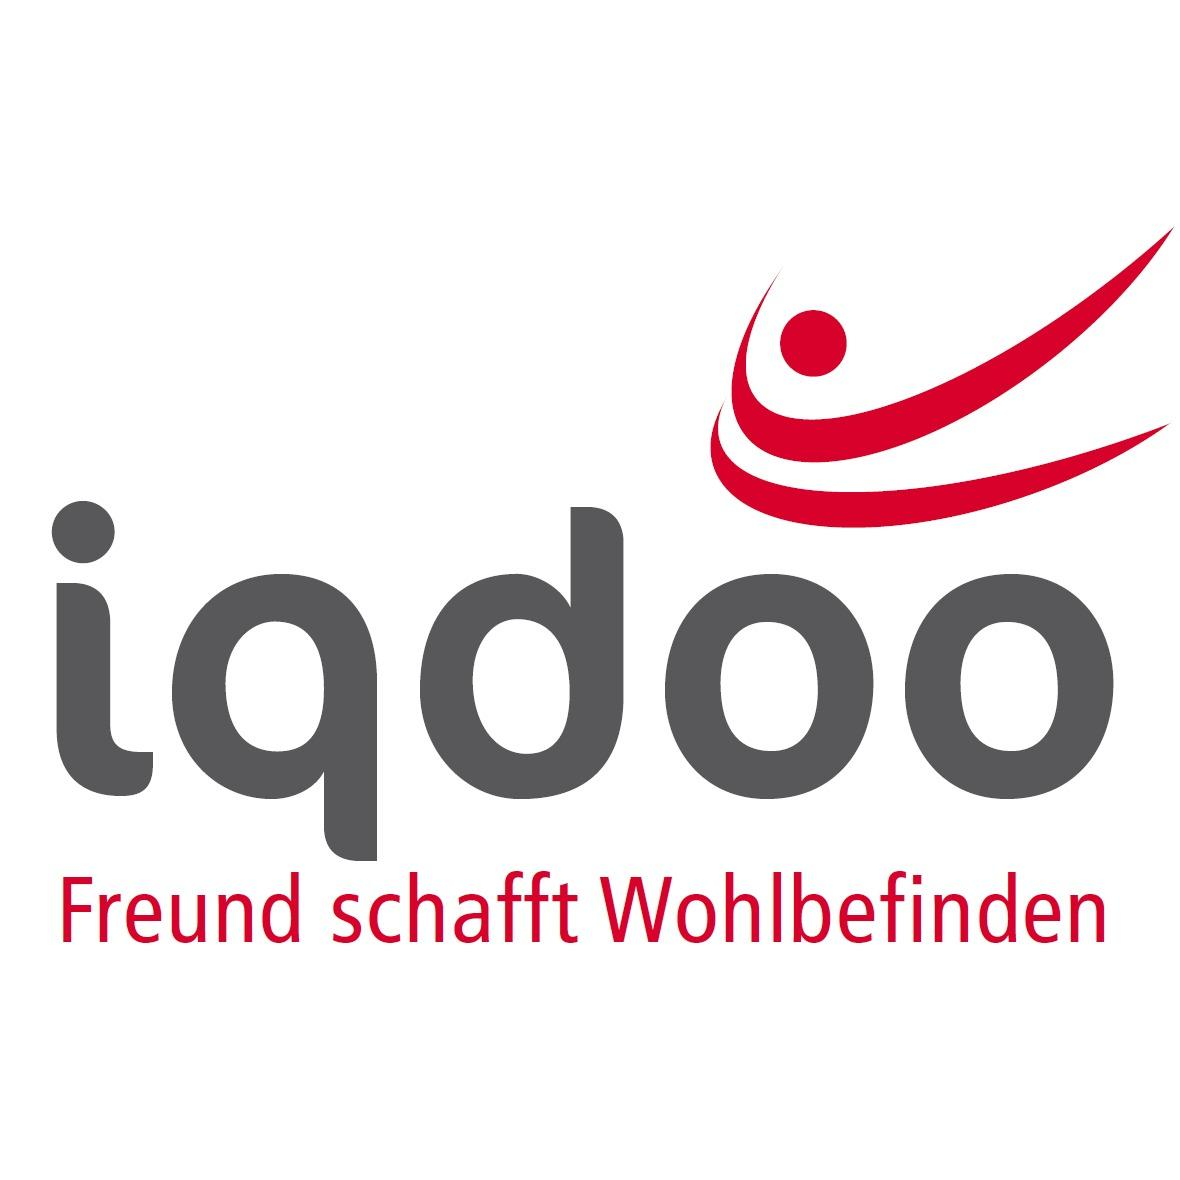 Bild zu Iqdoo GmbH & Co. KG The Wellovation Company in Schalkau